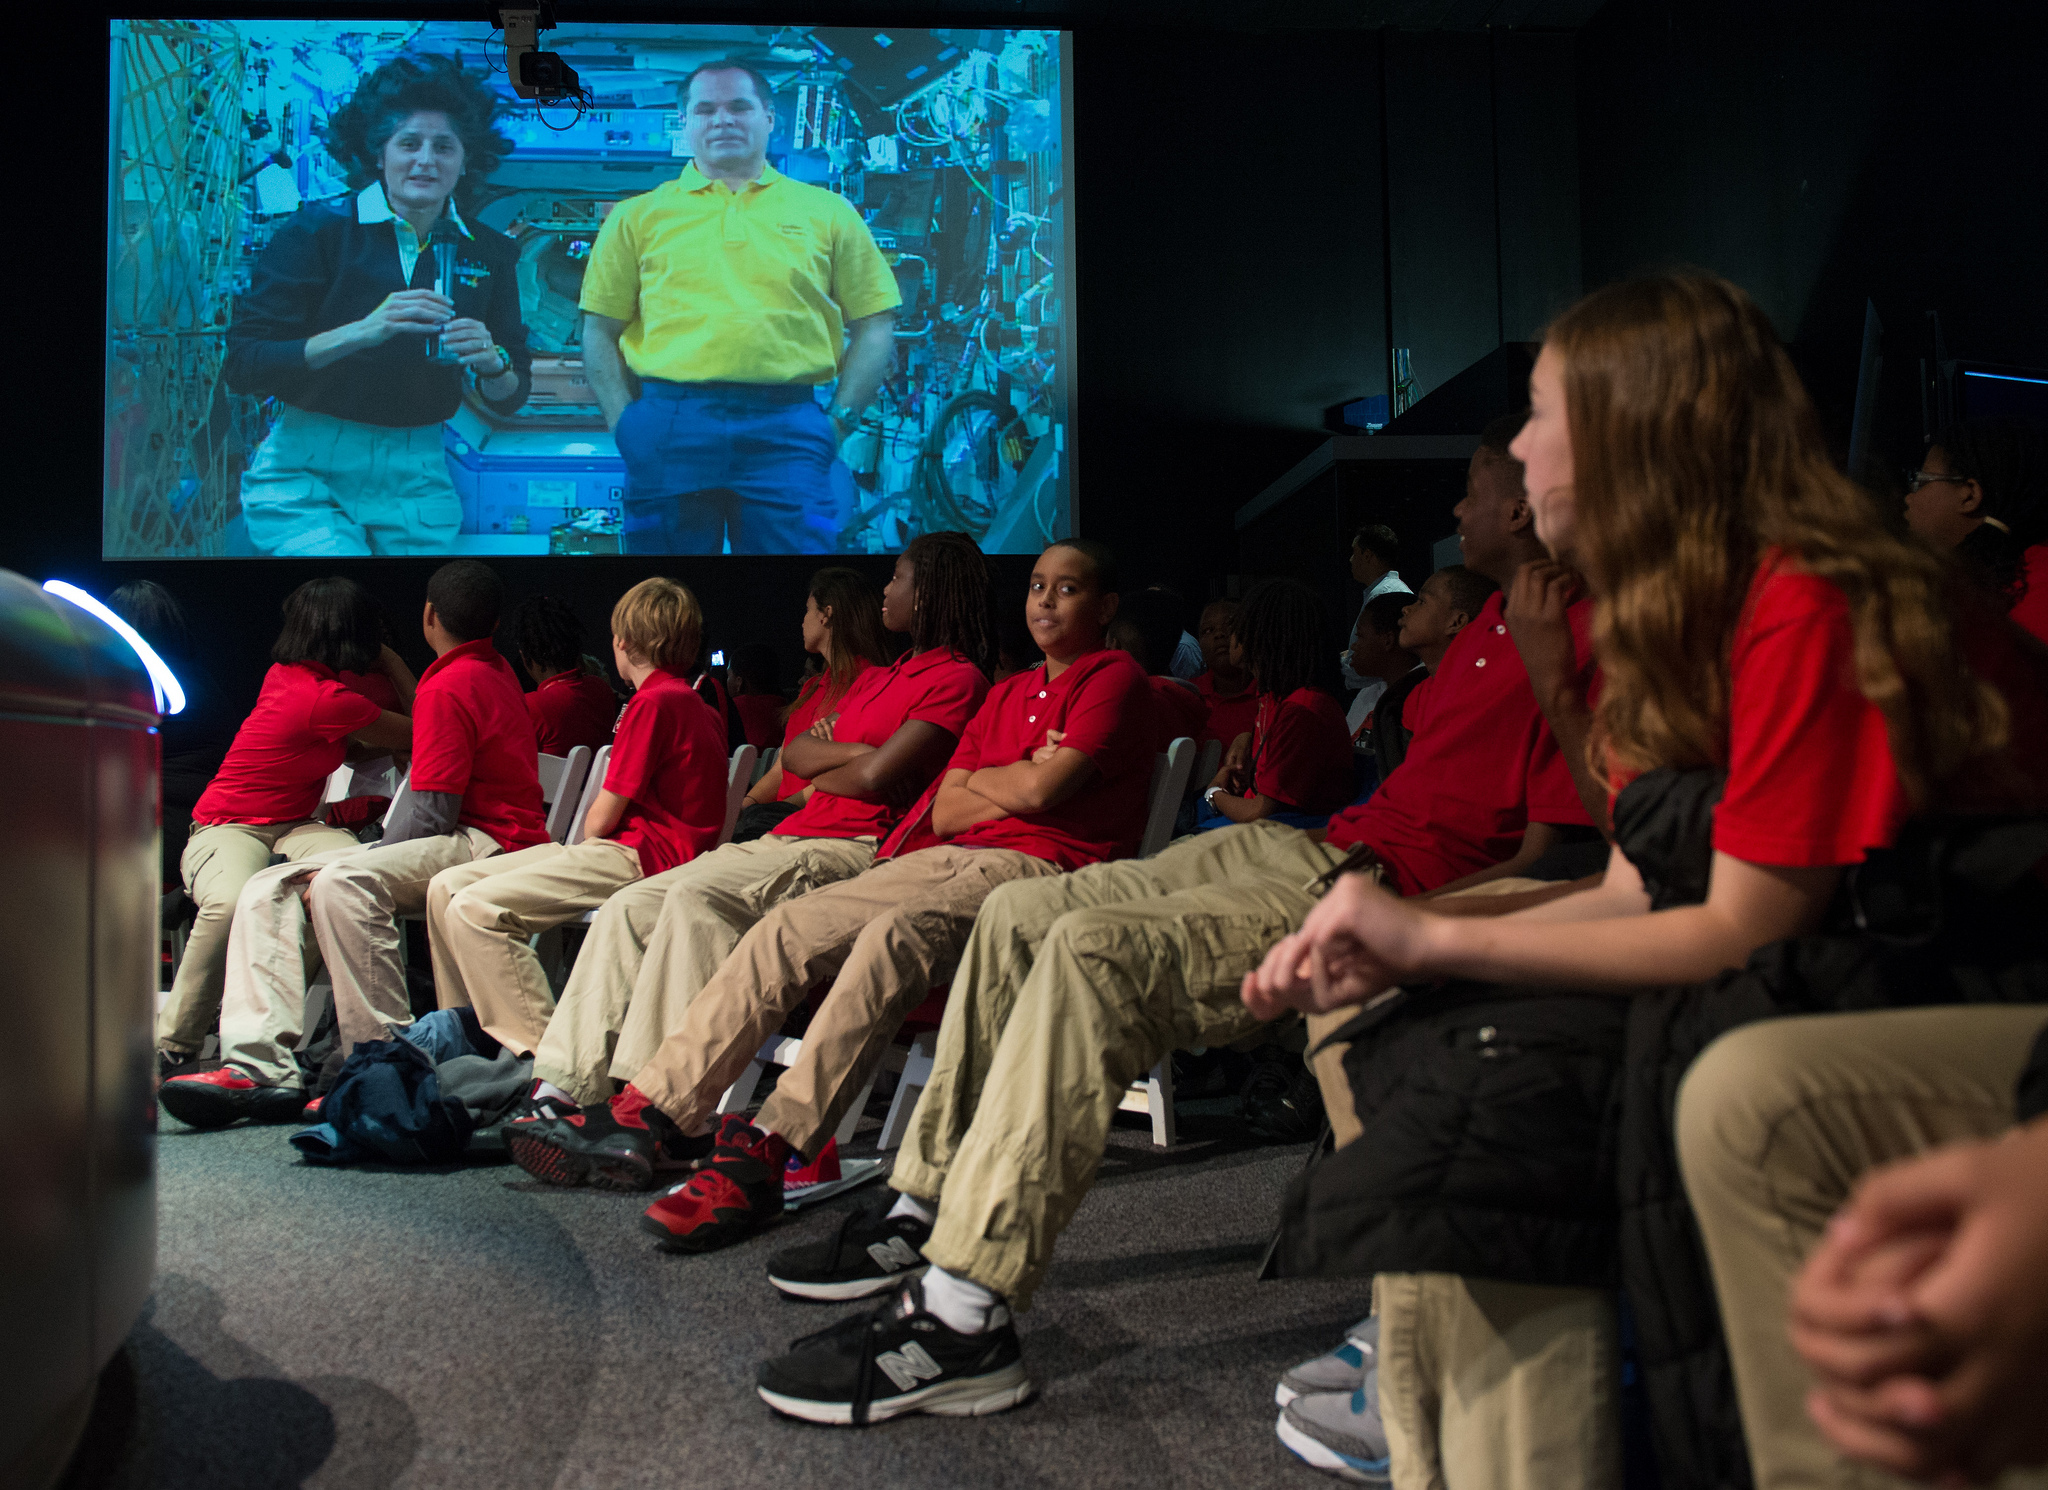 benefits for humanity protecting earth s natural resources nasa astronauts sunita williams on screen left and kevin ford answer student questions from